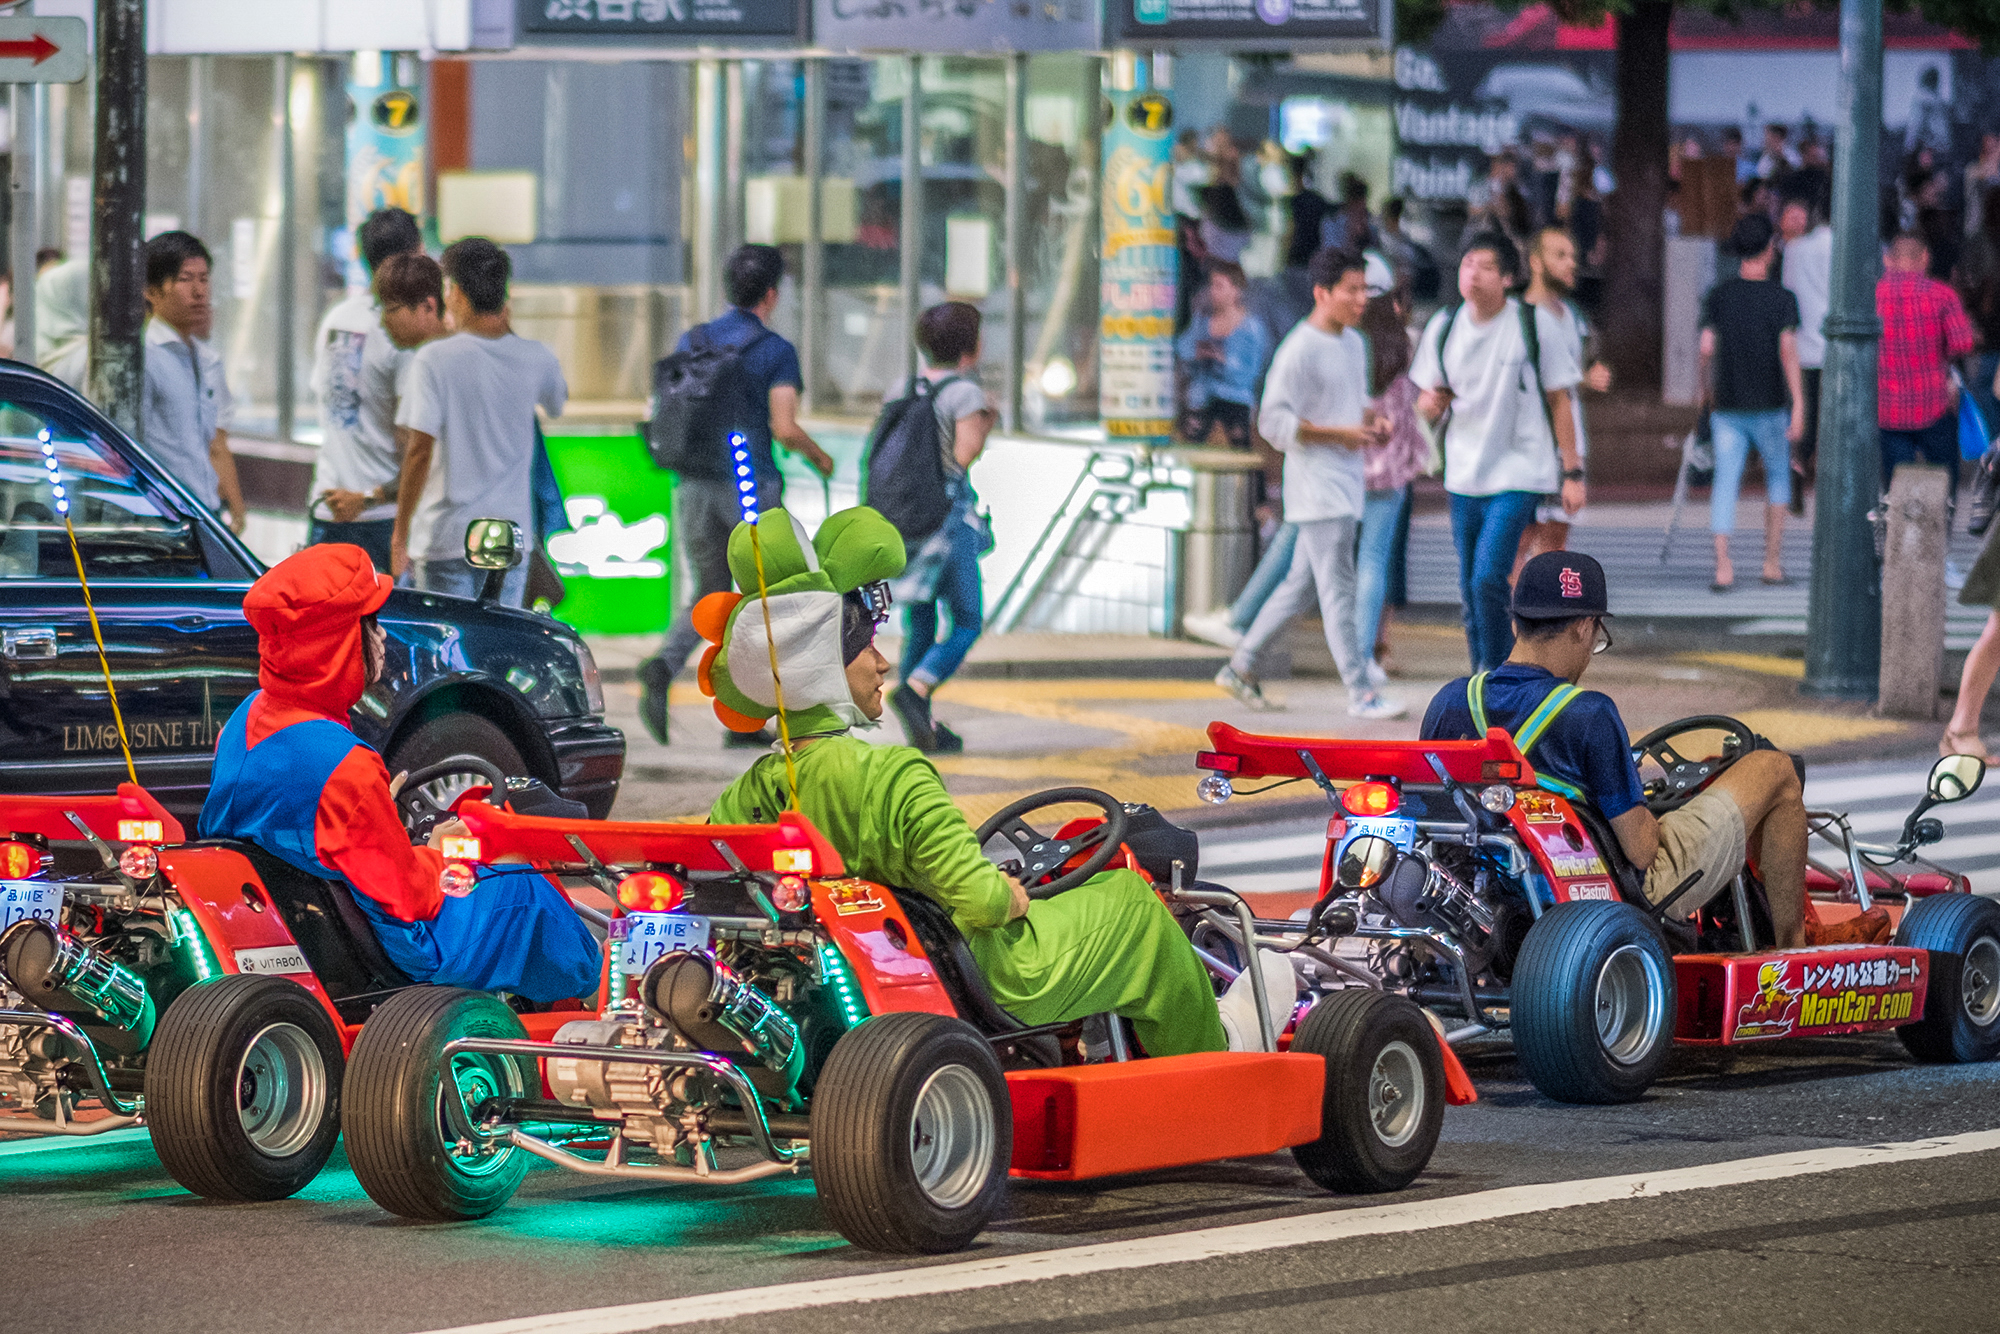 Go-karting in Tokyo with Street Kart Tour.